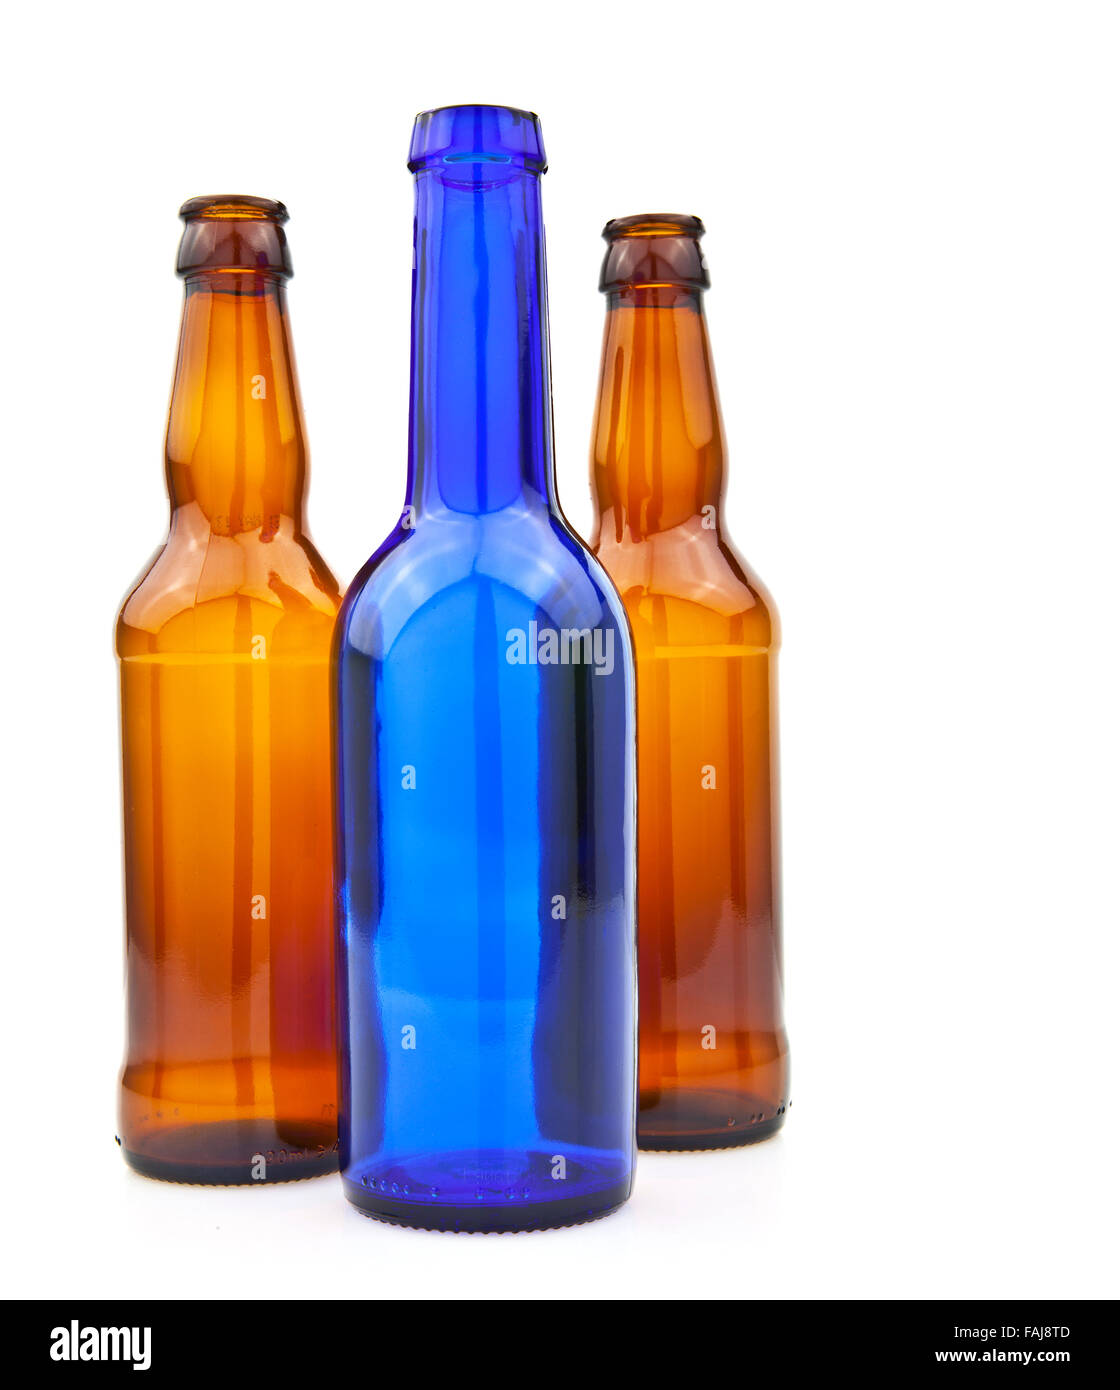 empty bottles of alcohol stockfotos empty bottles of alcohol bilder alamy. Black Bedroom Furniture Sets. Home Design Ideas